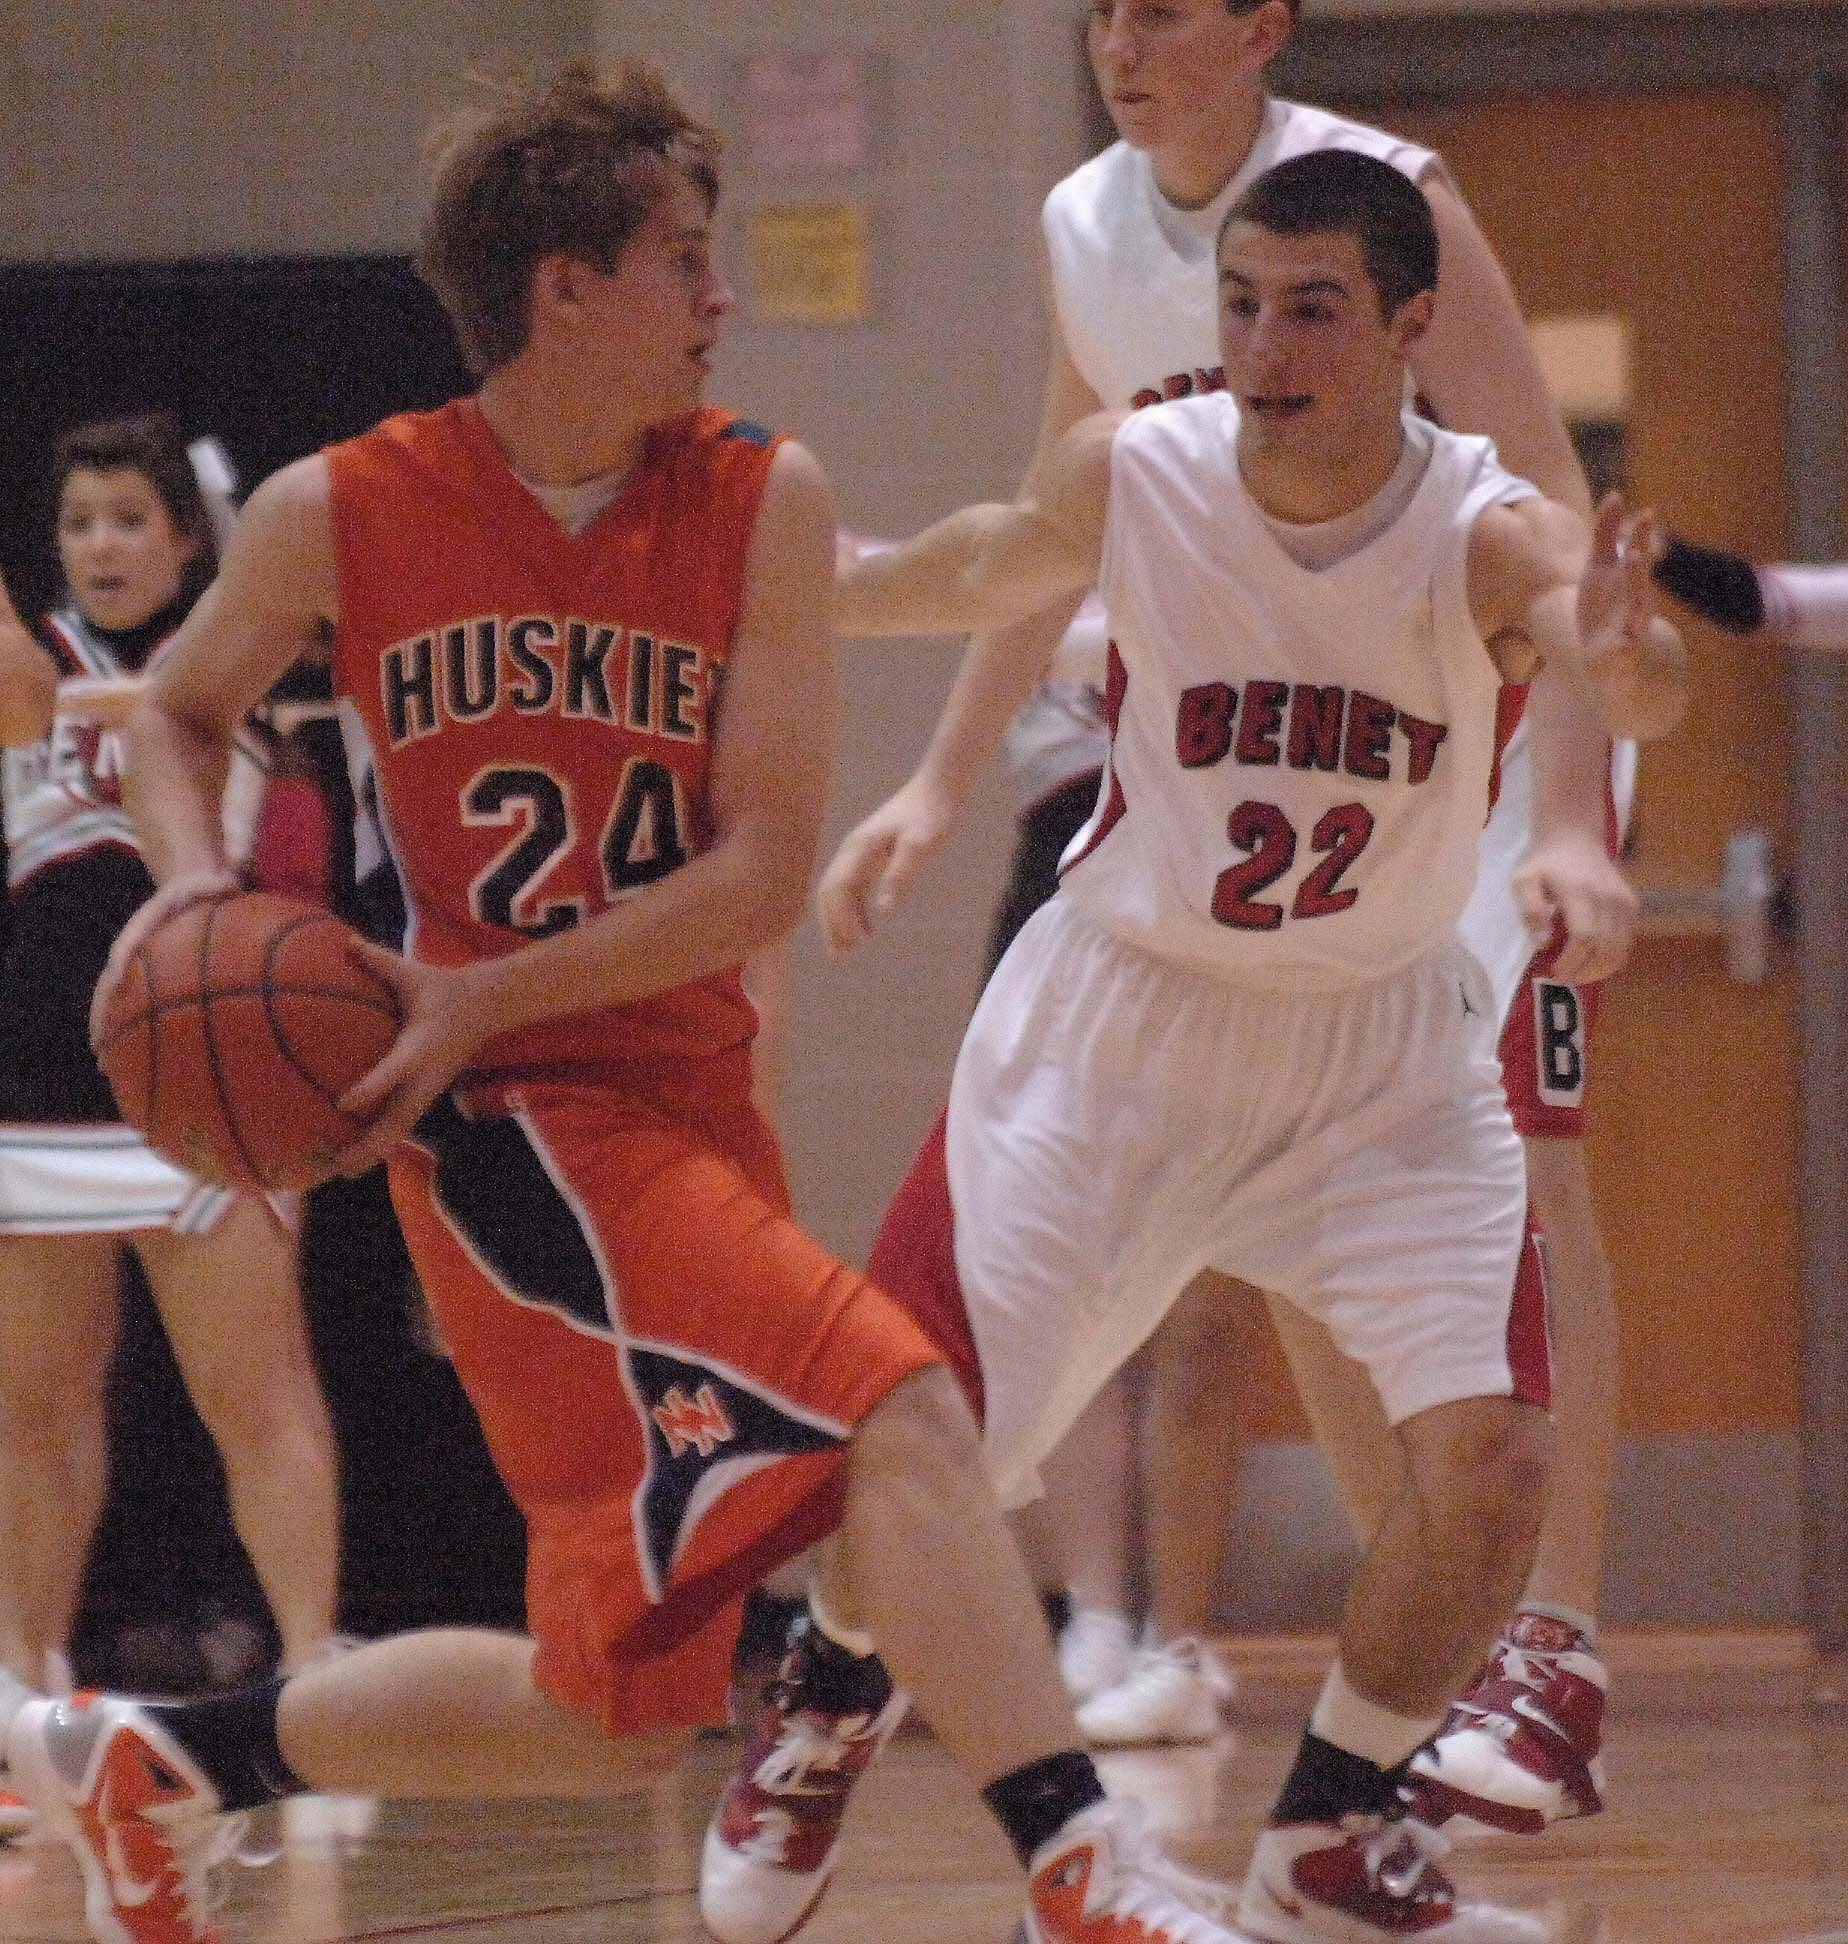 PAUL MICHNA/Pmichna@dailyherald.com Kyle Lindberg of Naperville North looks to pass around Matt Parisi of Benet. This took place during the Naperville North vs. Benet boys basketball game in Lisle Tuesday.